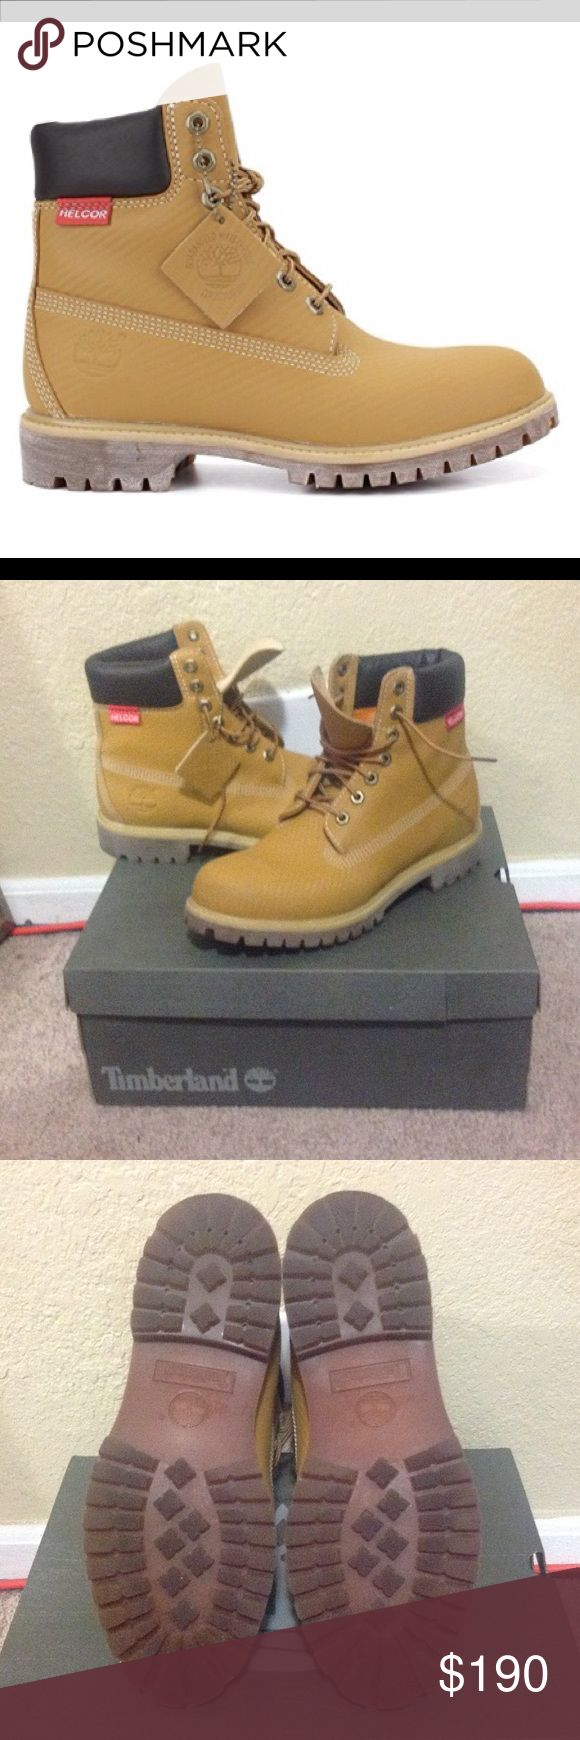 timberland buyers